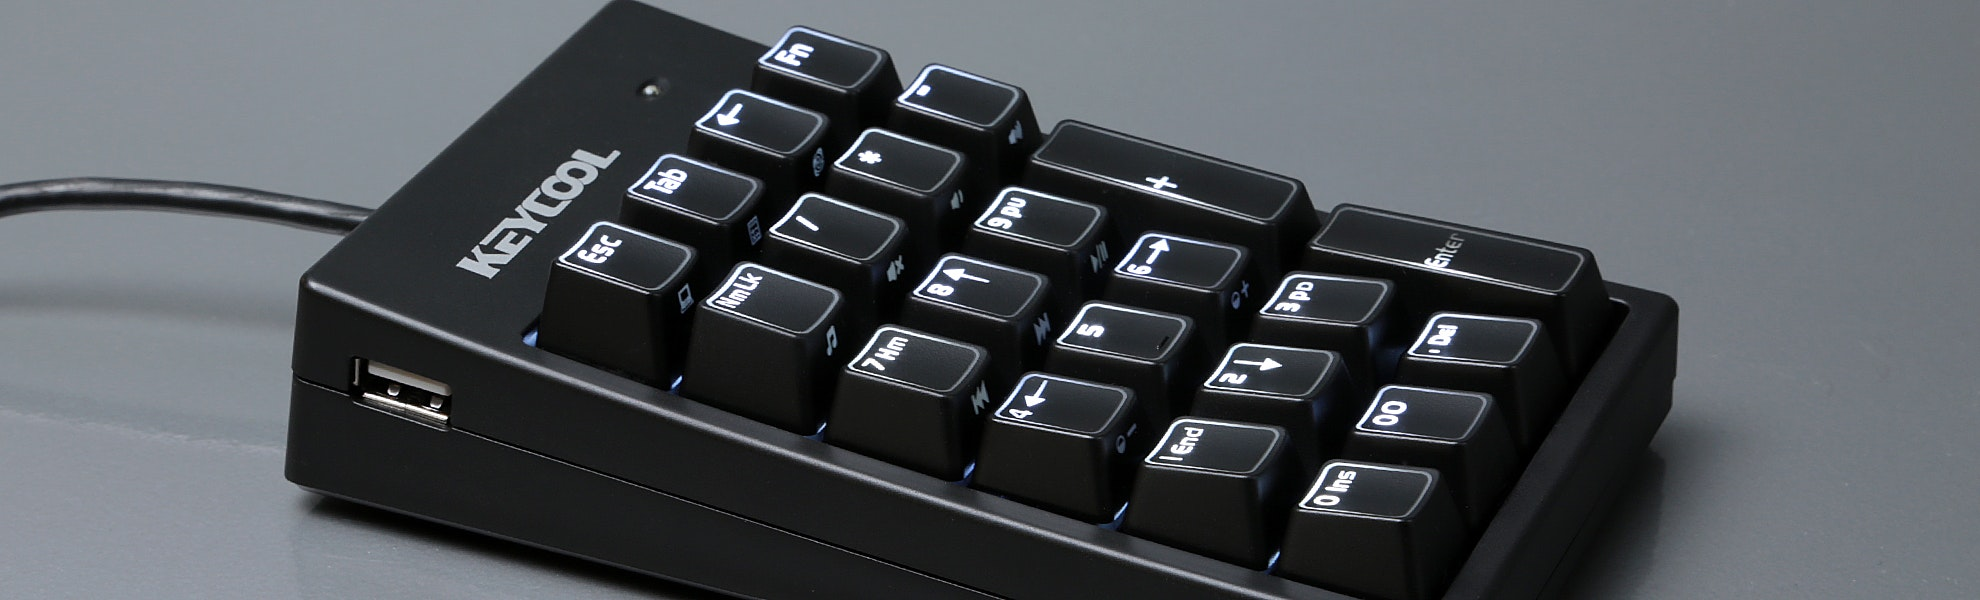 KEYCOOL 22-Key Numeric Mechanical Keypad